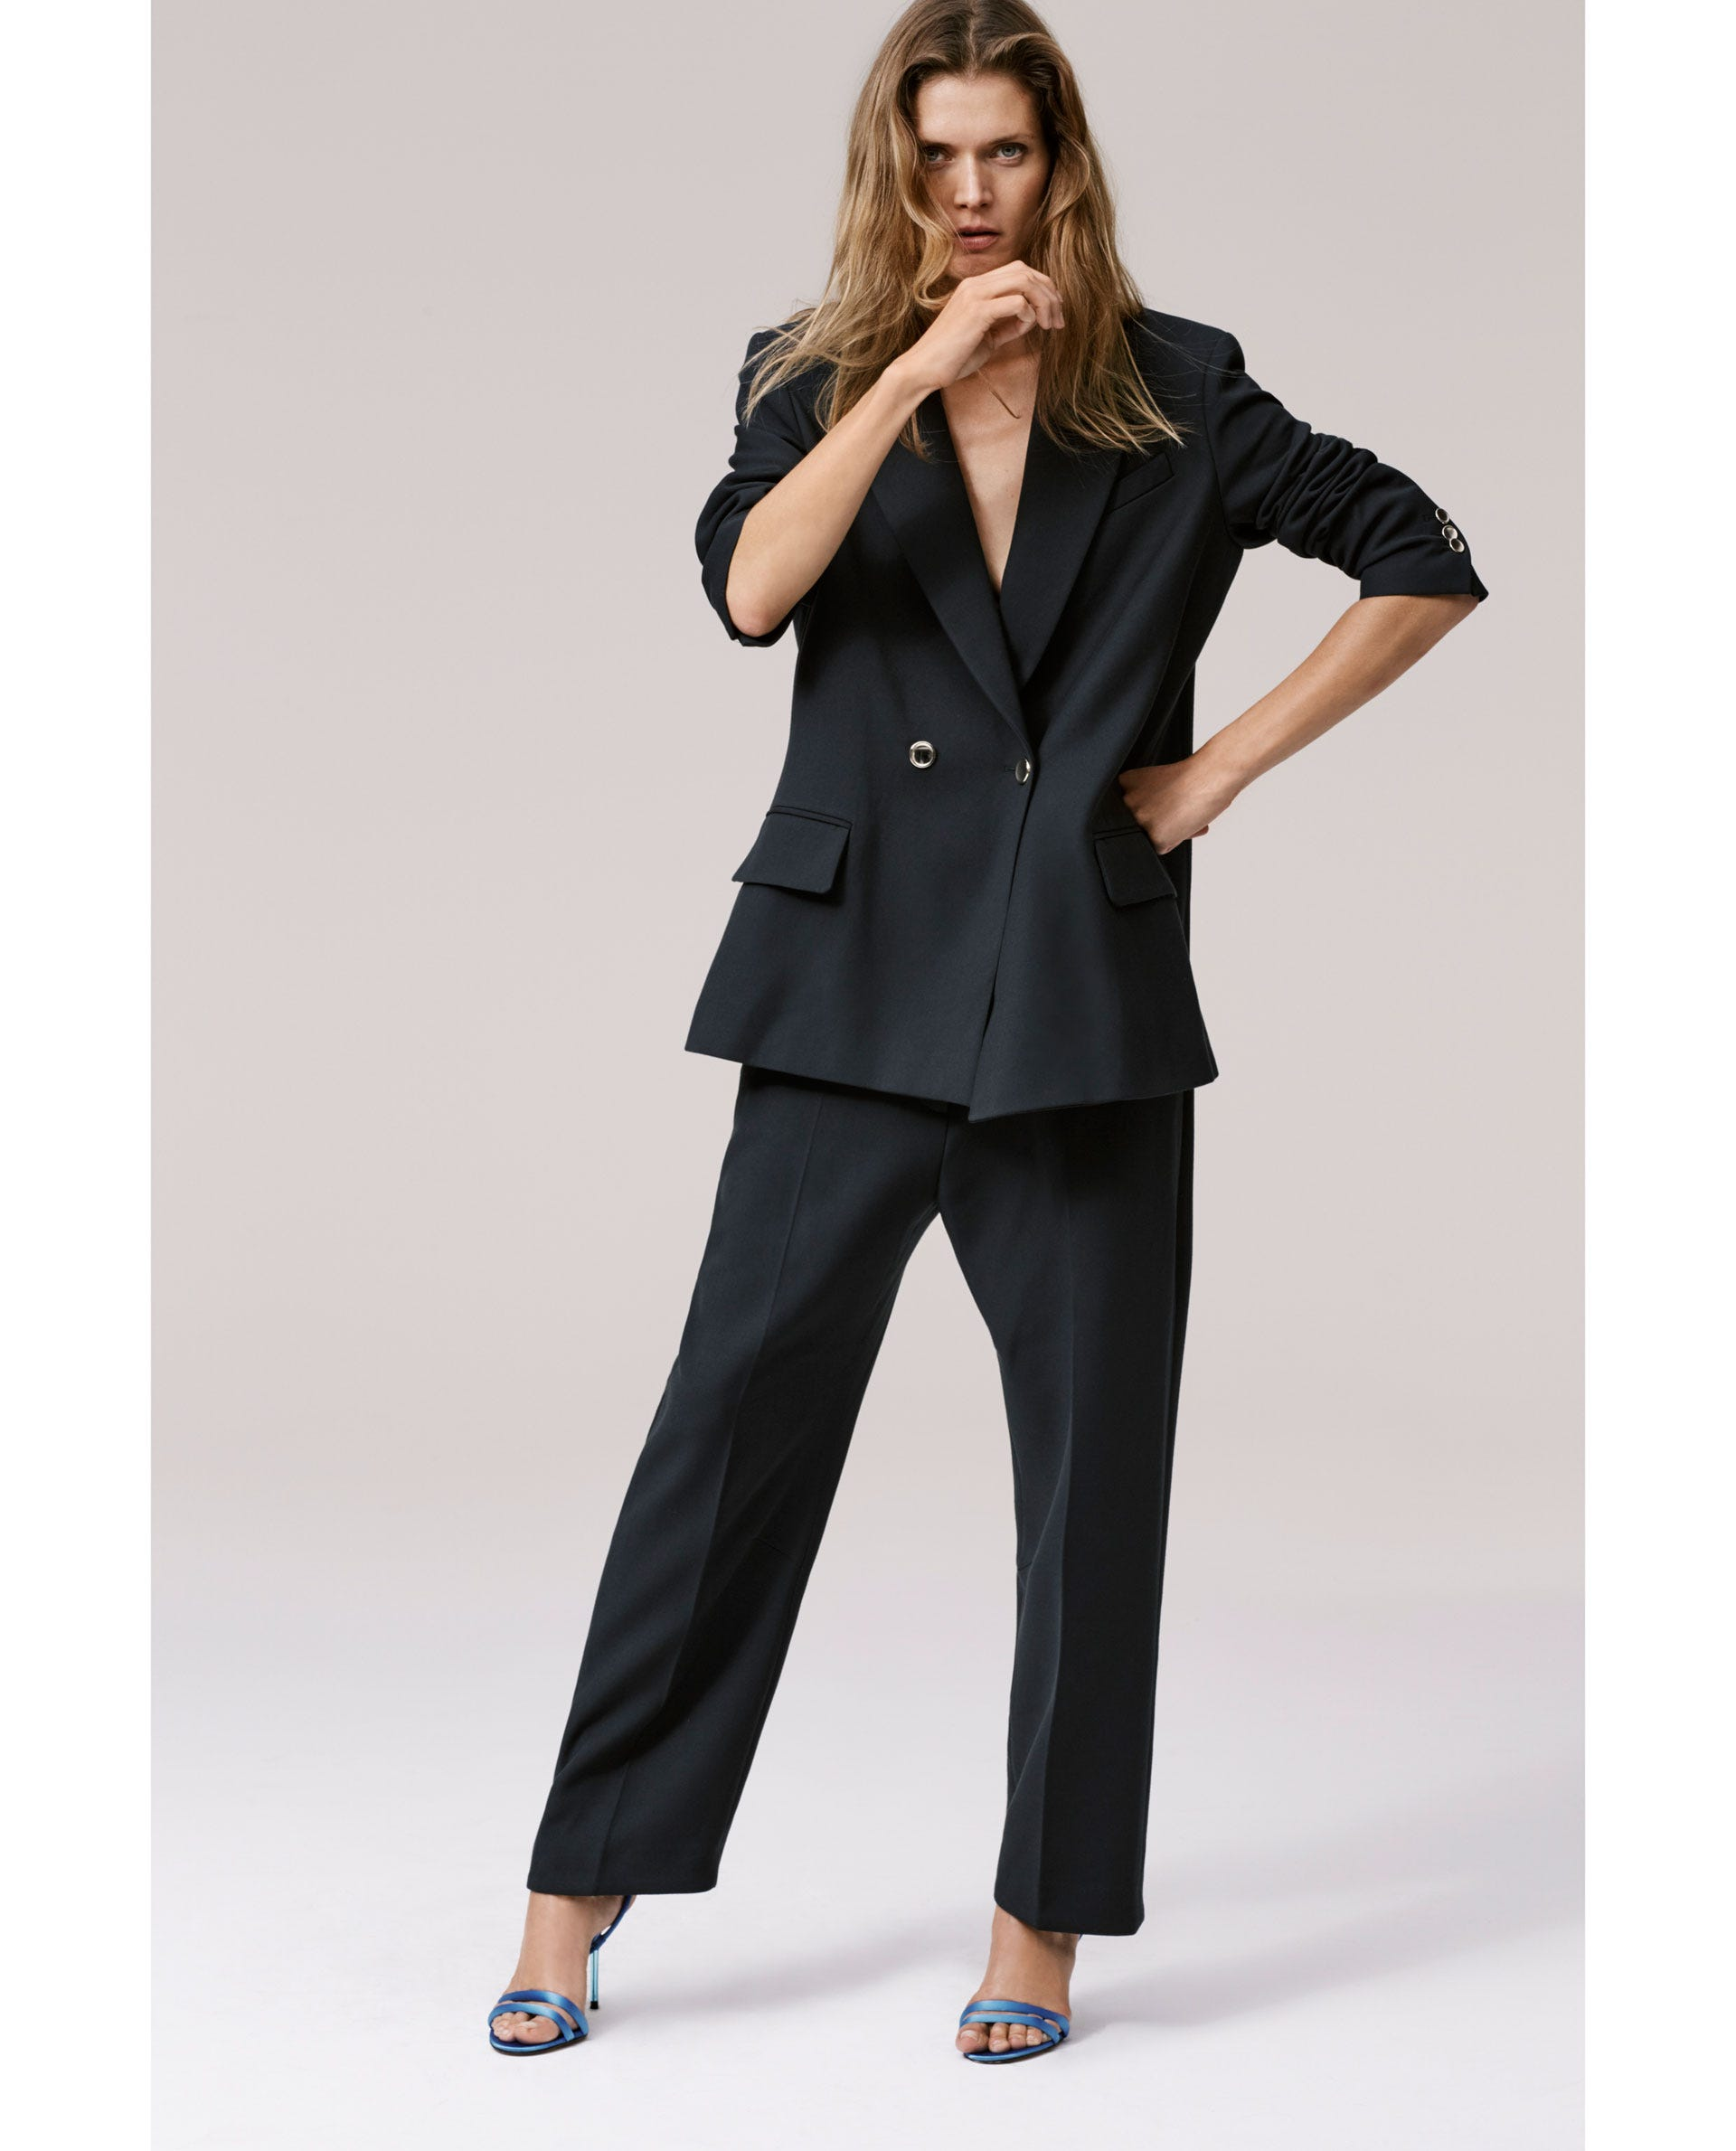 08d8392ad54 Zara Timeless Collection Uses Models Over Forty Fall